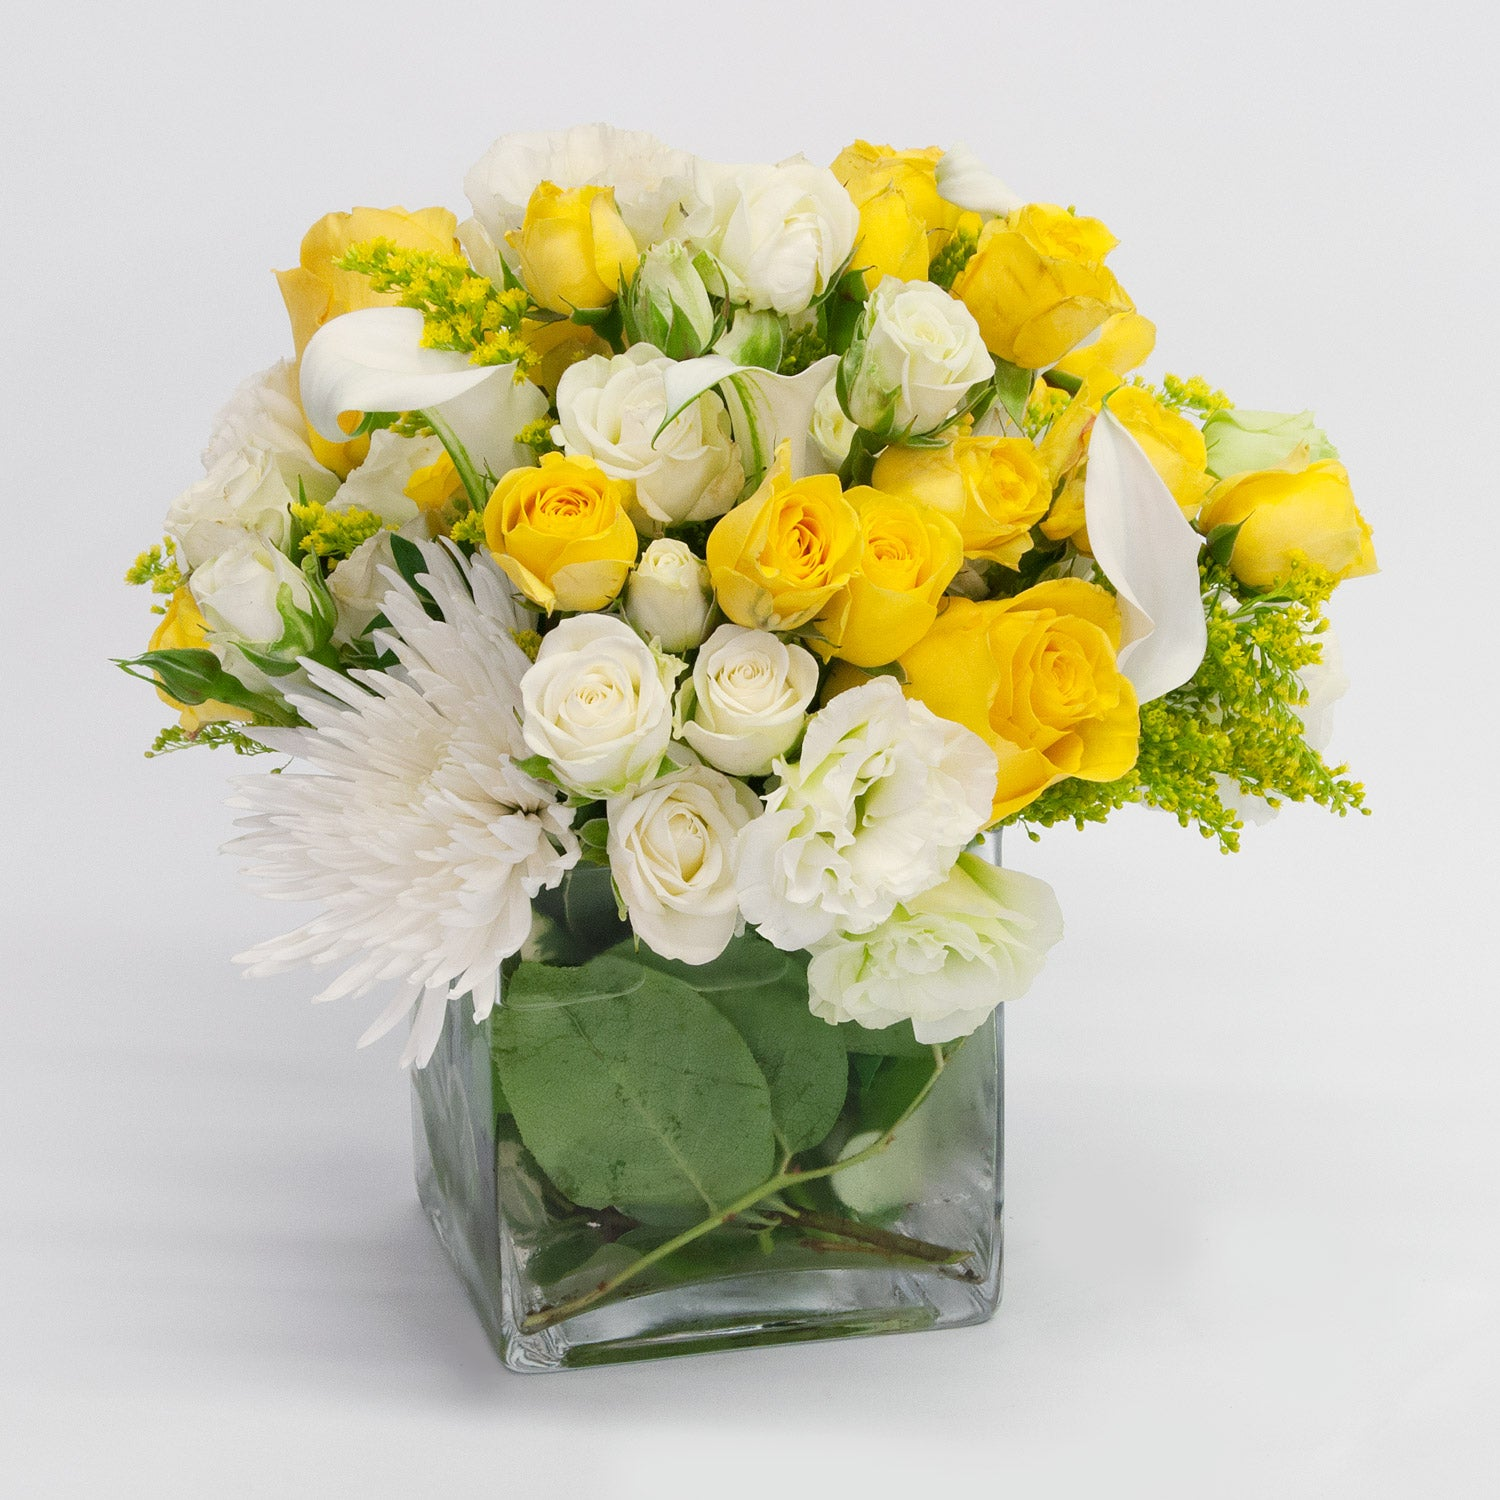 Exceptional Yellow and White Roses